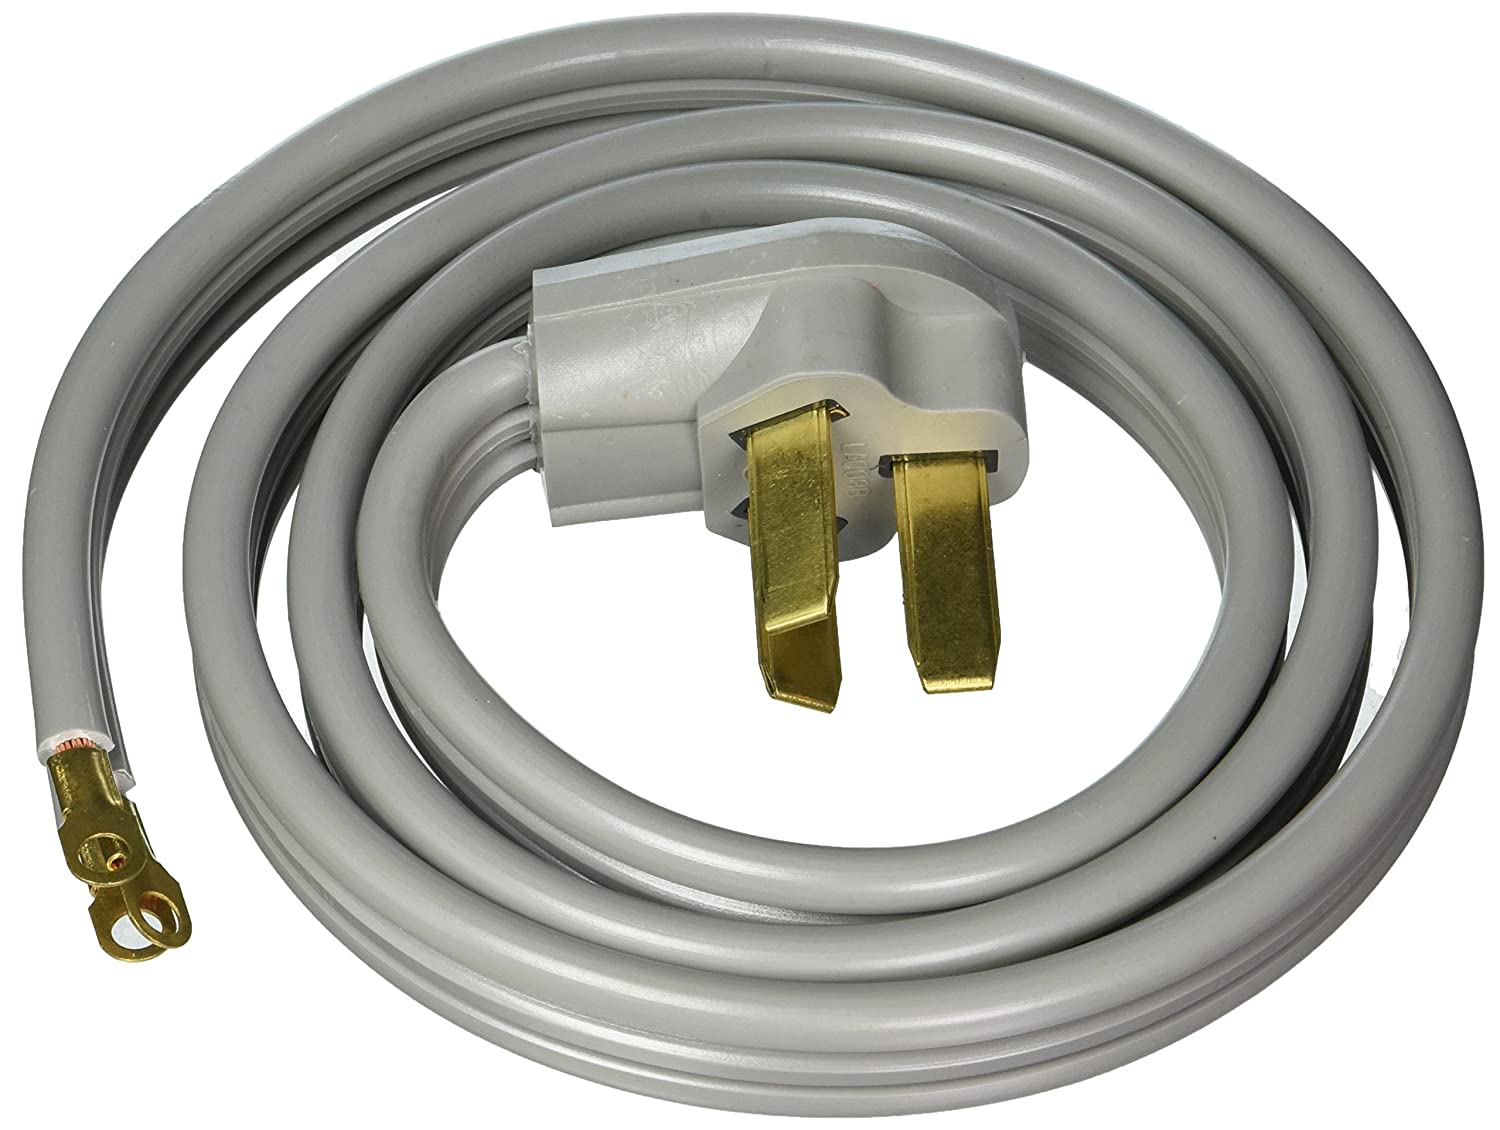 Certified Appliance Accessories 3 Wire Closed Eyelet 50 Outlet Prong Oven Electrical Cord Plug Wiring 4 To Amp Range 5ft Petra Home Improvement